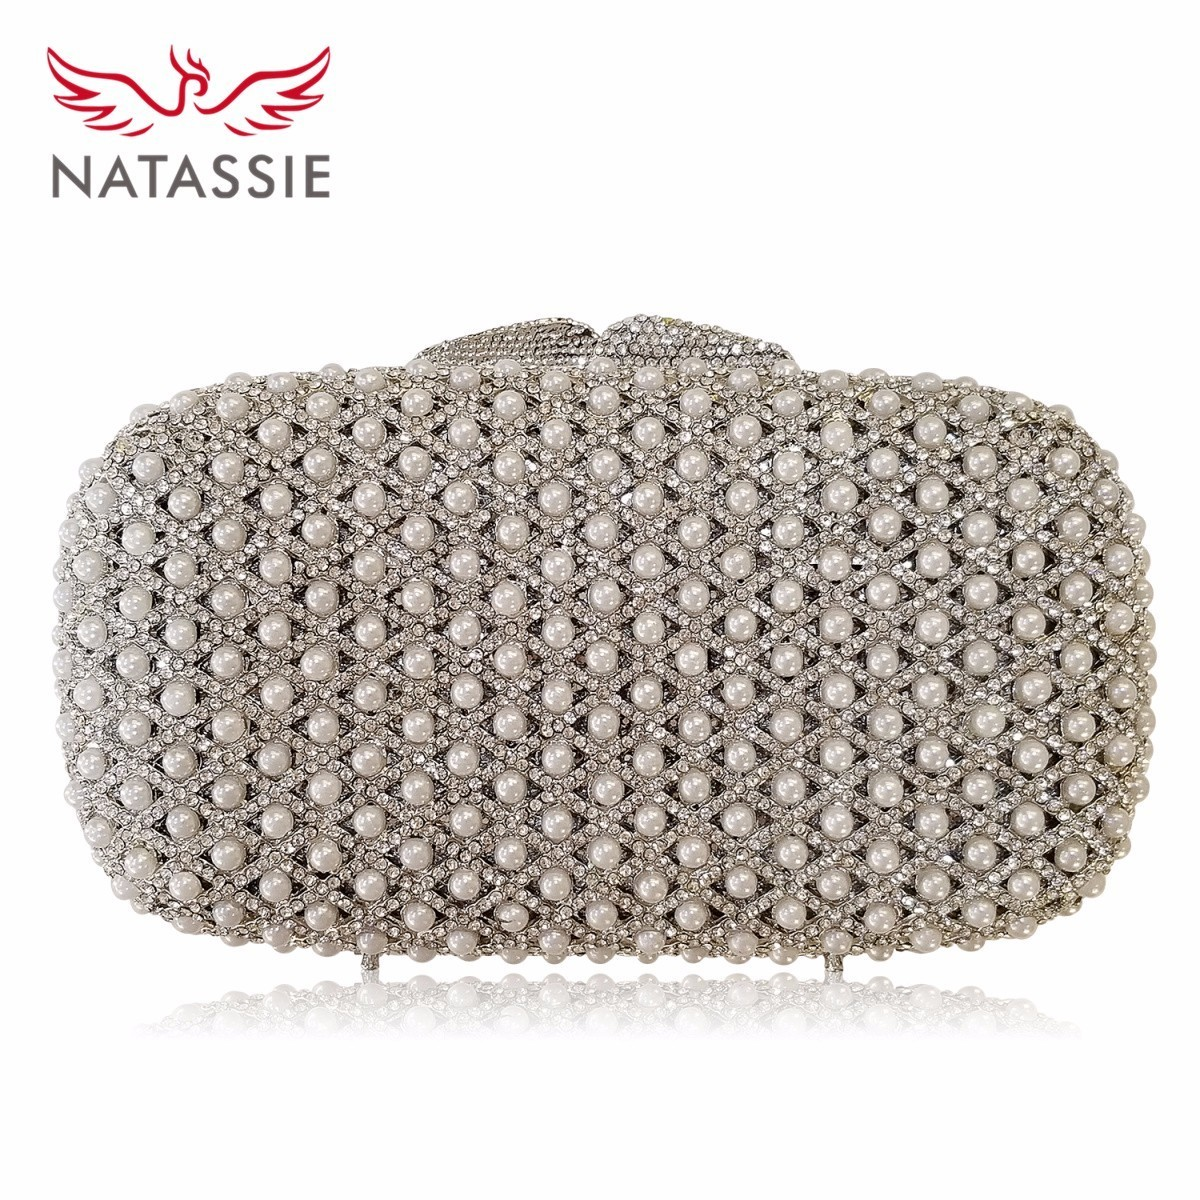 NATASSIE Rhinestone Silver Clutch Bag With Beading Wedding Clutches Sisters Party Attractive Shine Doubleside Crystal Bag L1077 сумка tyoulip sisters tsb162ven silver distance